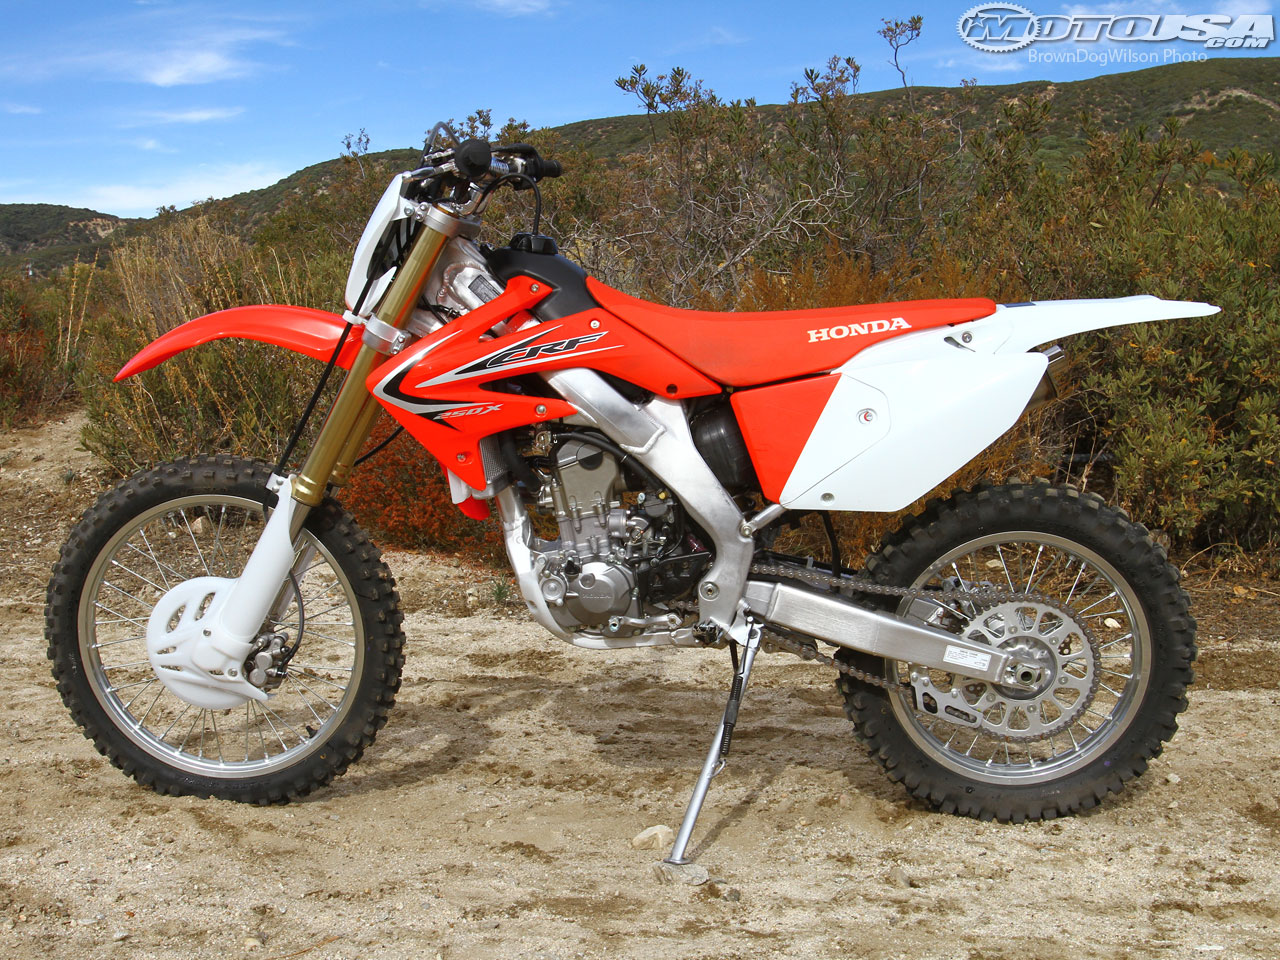 2006 honda crf 250 x pics specs and information. Black Bedroom Furniture Sets. Home Design Ideas